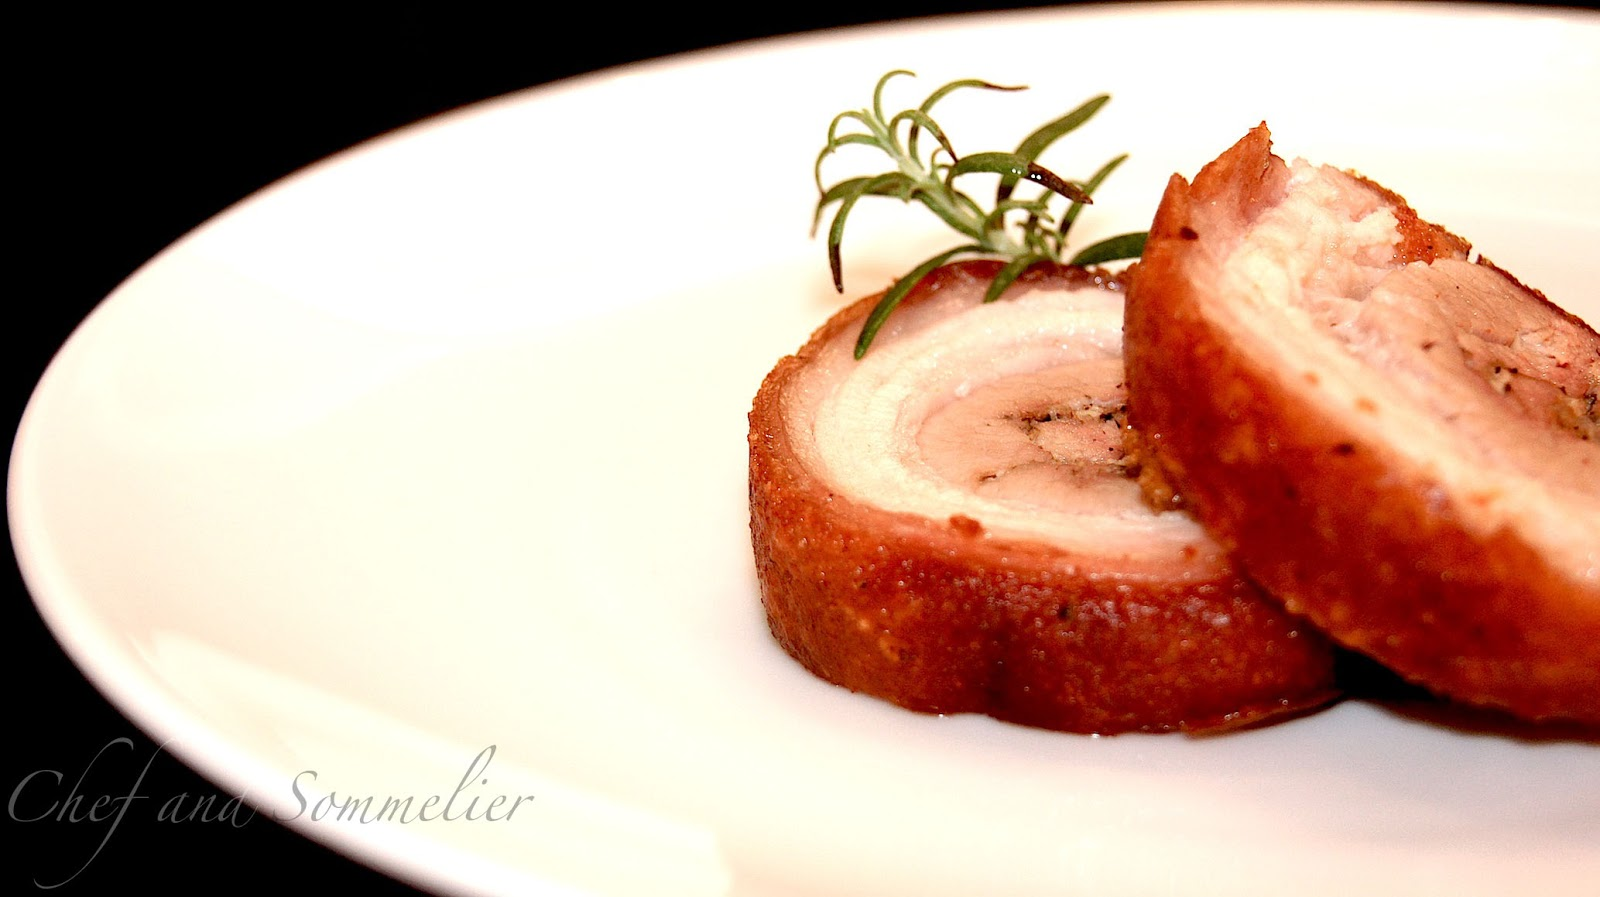 deep fried sous vide 36 hour all belly porchetta porchetta porchetta ...